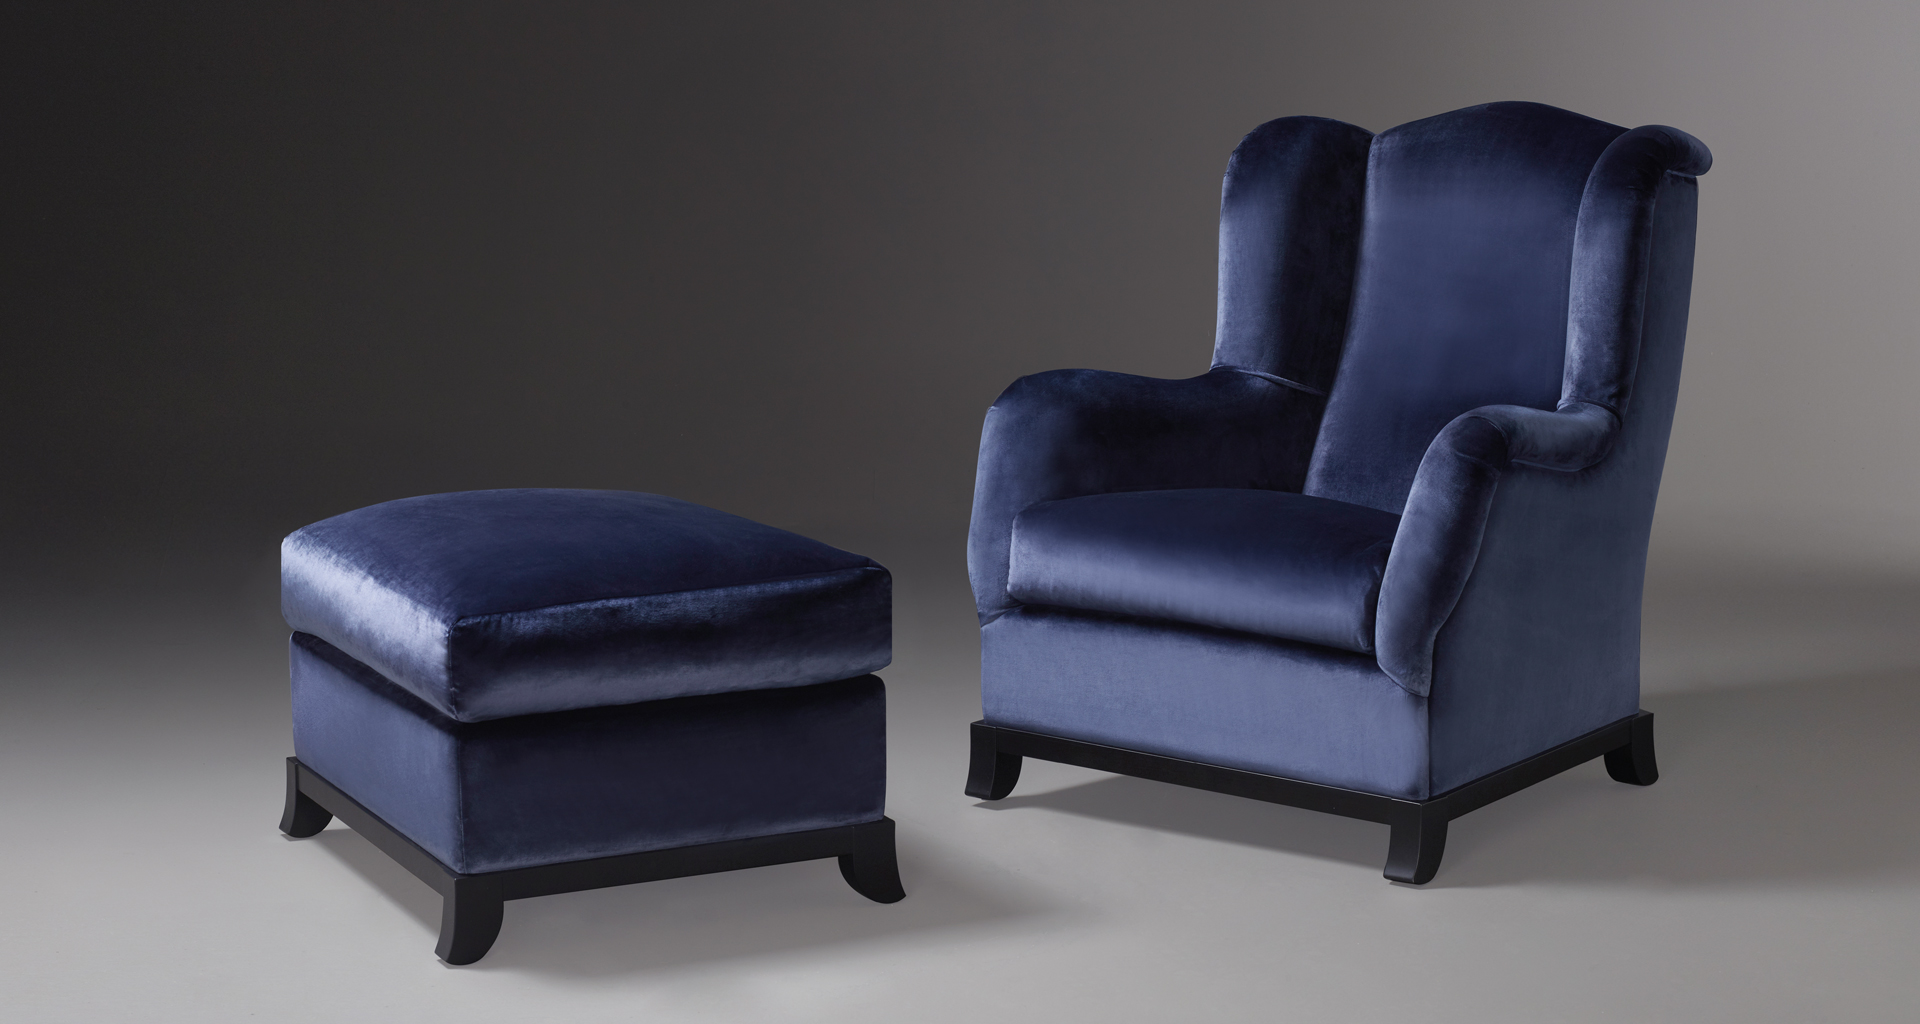 Madame A is an armchair covered in fabric or leather with wooden base, from Promemoria's catalogue | Promemoria